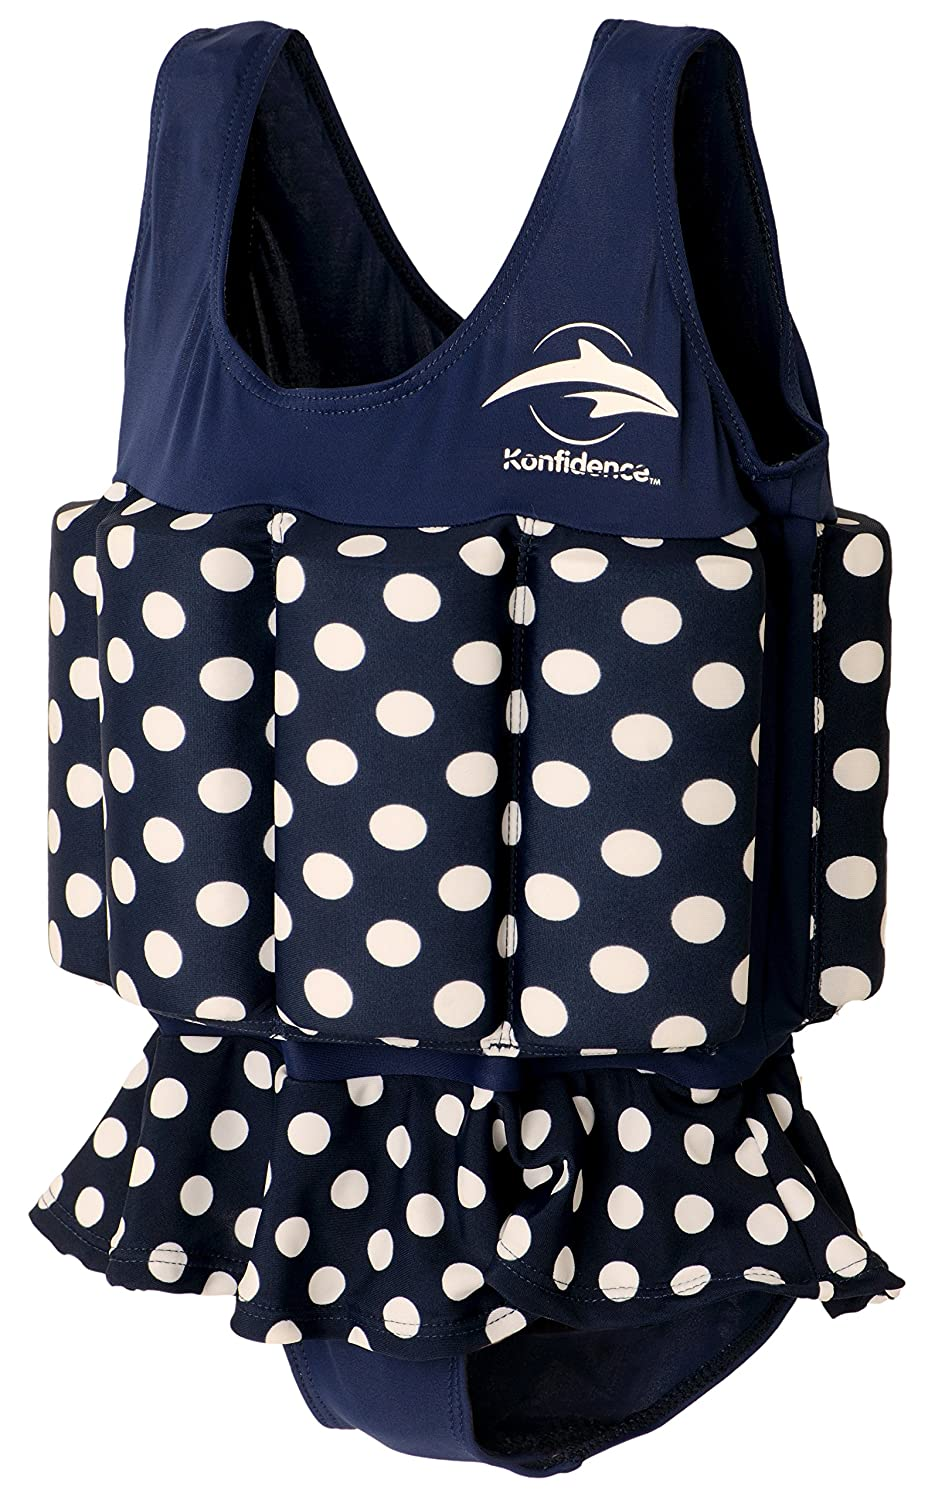 Konfidence Girls Floatsuit Polka Dot 4-5 Years Navy FS04-B-05